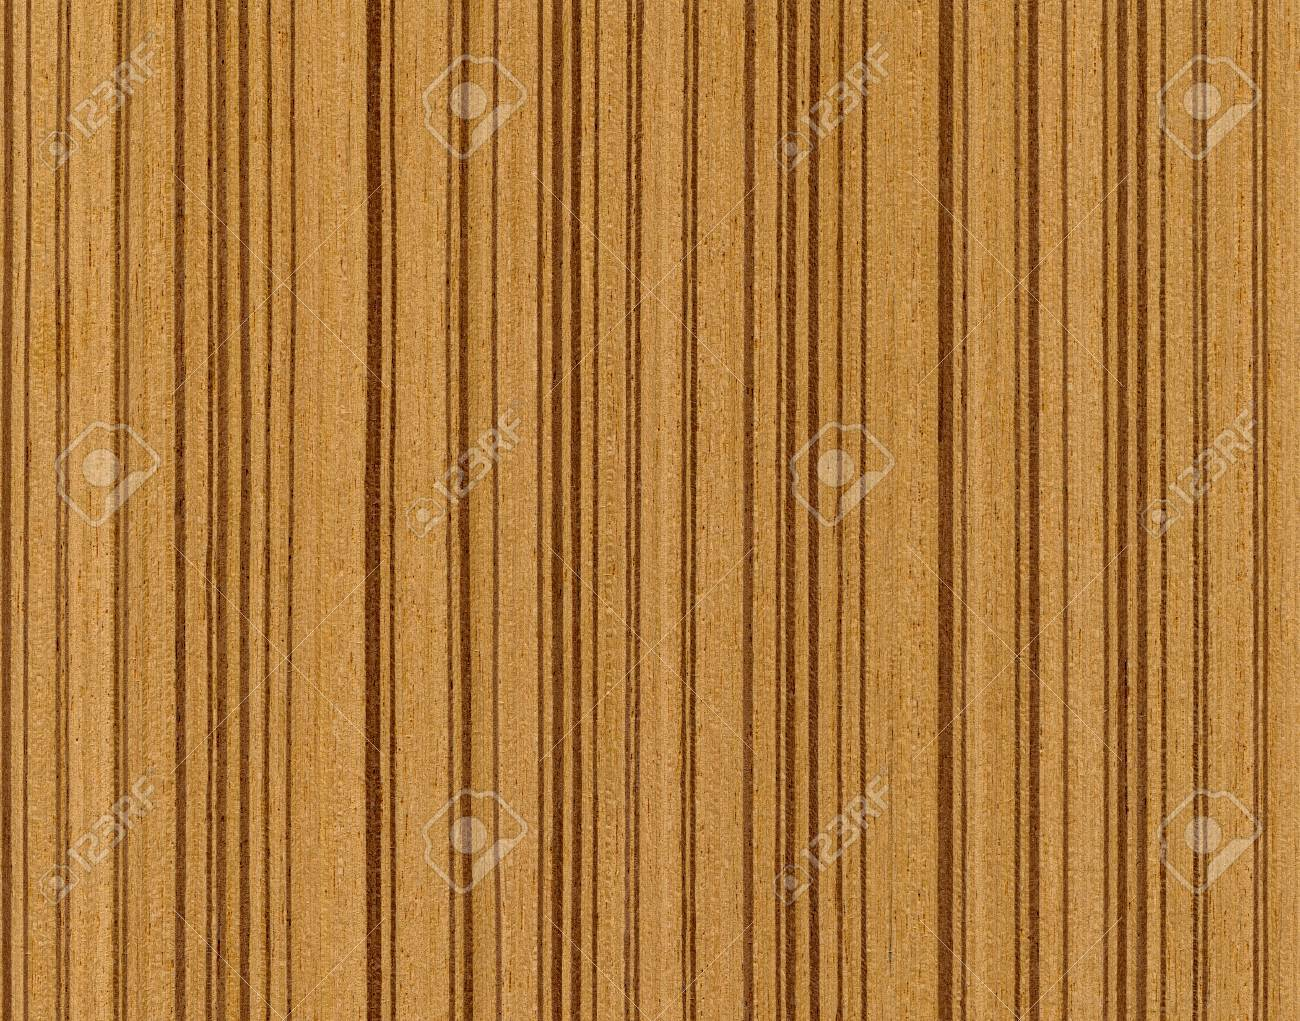 Wood Grain Texture Teak Wood Can Be Used As Background